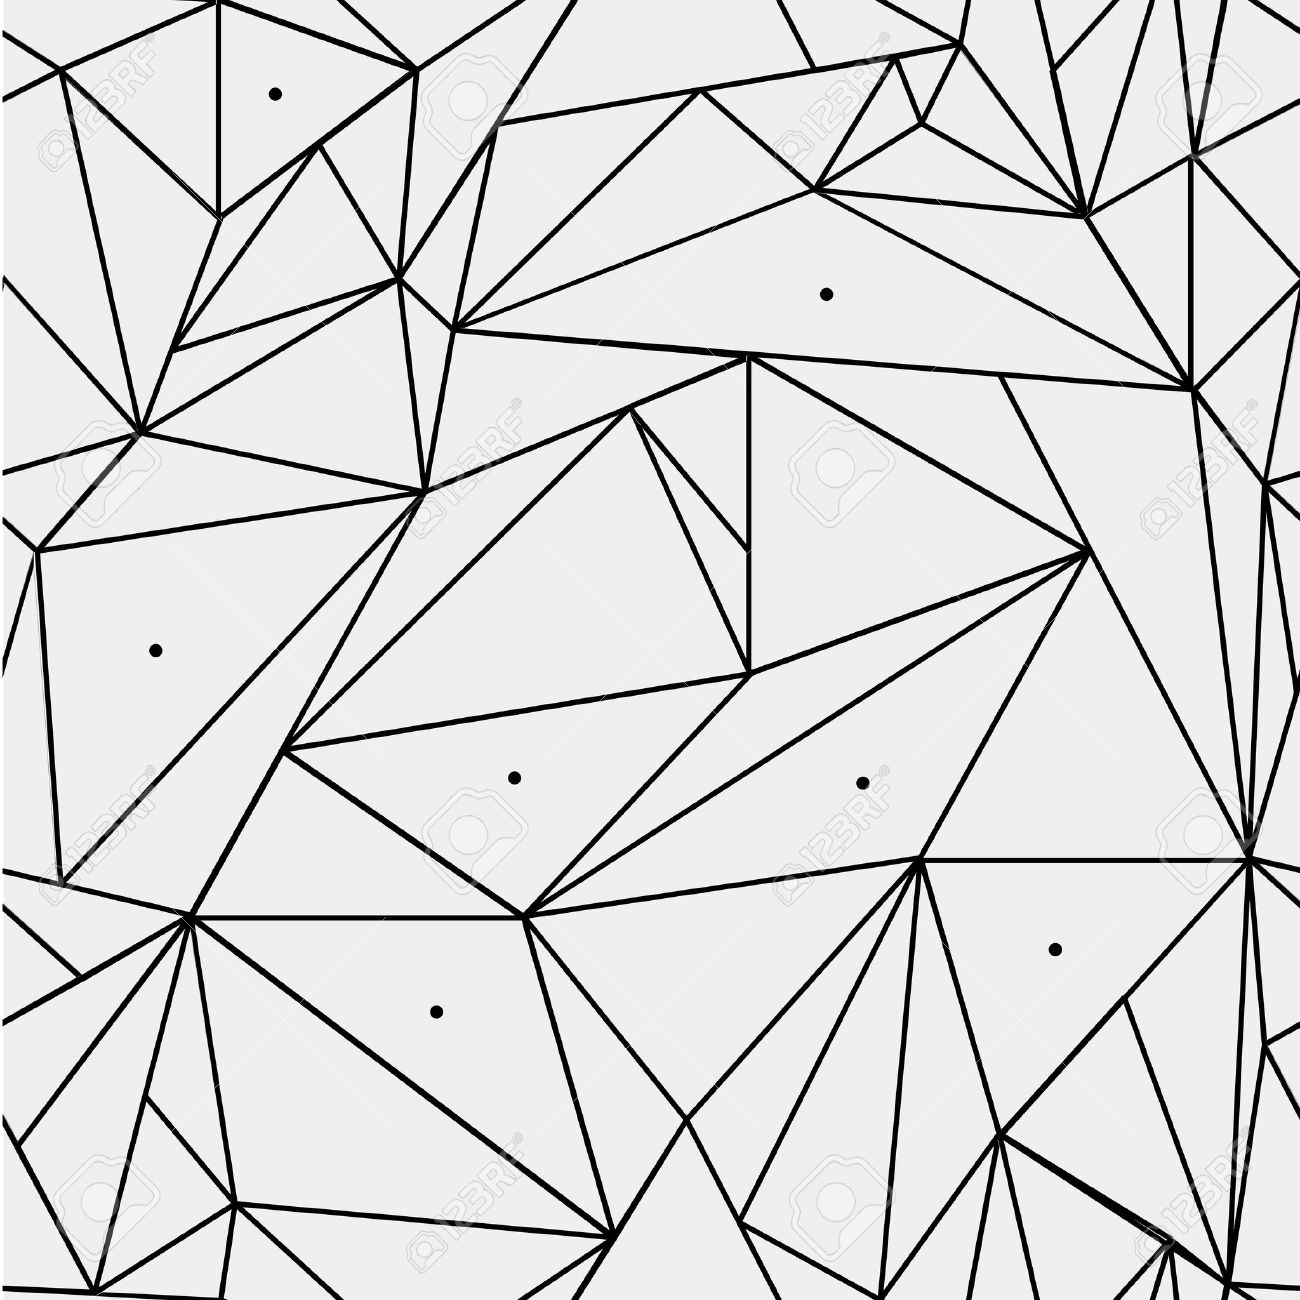 Geometric simple black and white minimalistic pattern triangles geometric simple black and white minimalistic pattern triangles or stained glass window can thecheapjerseys Image collections